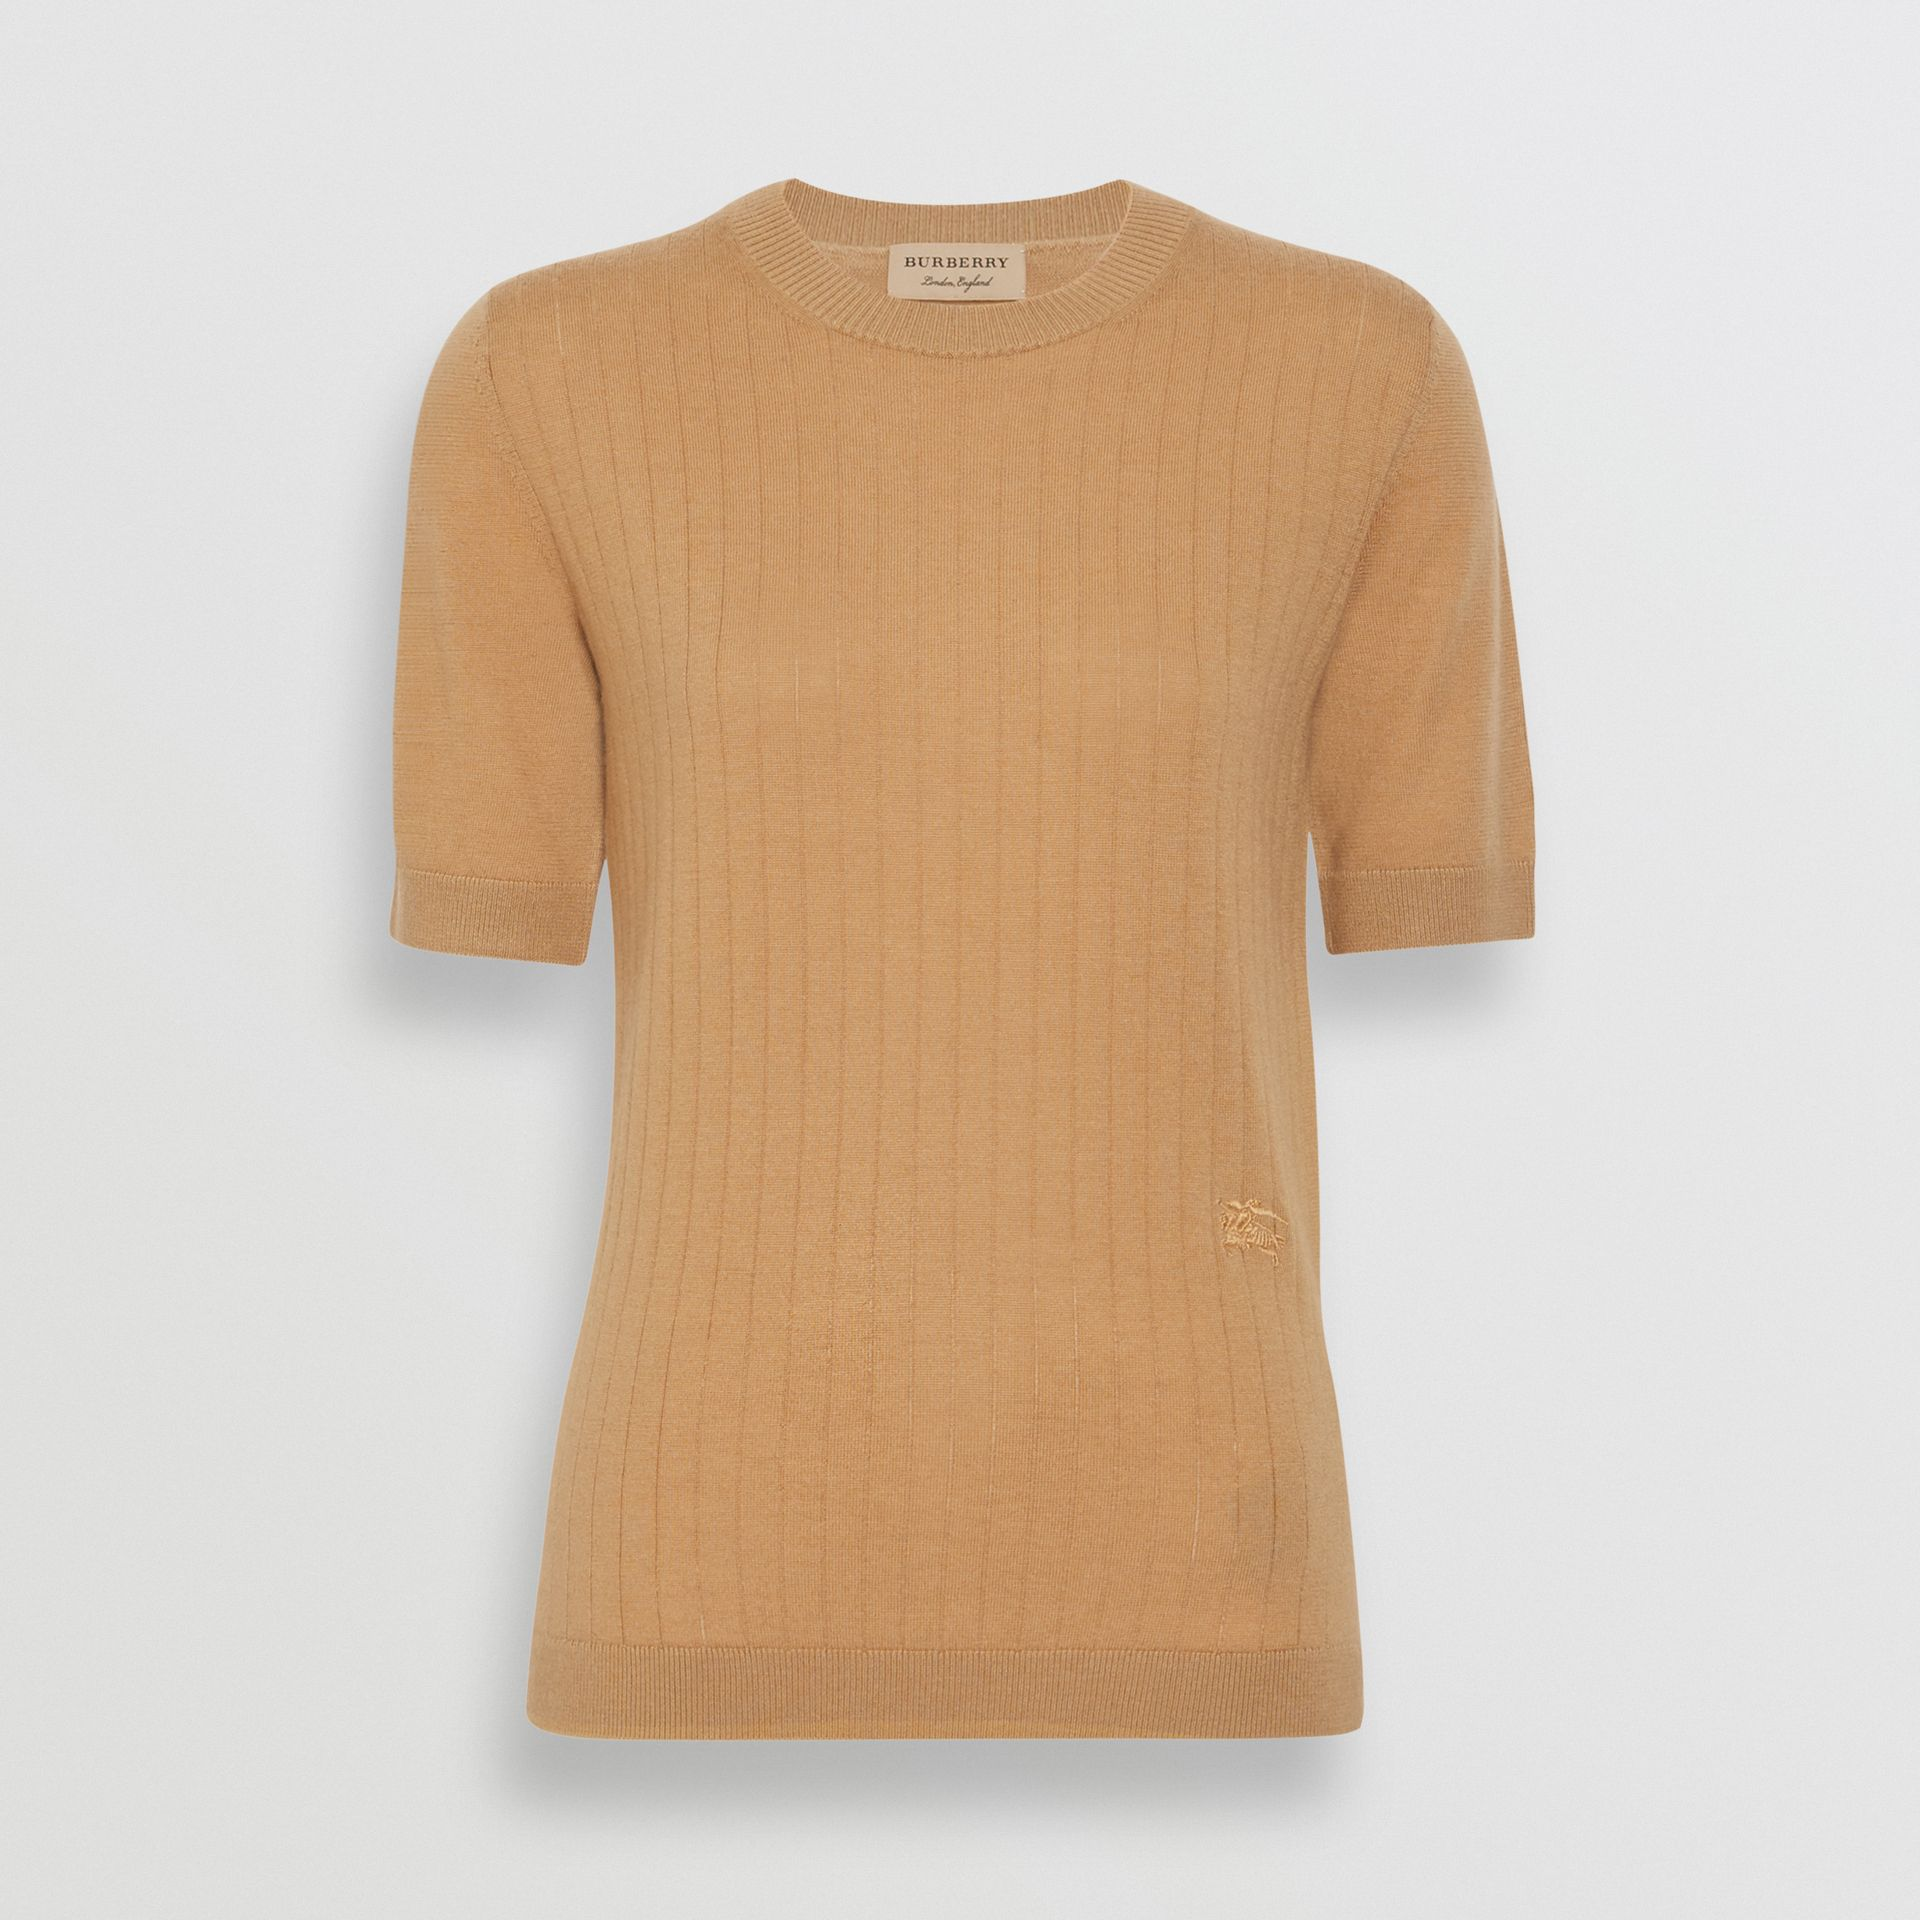 Short-sleeve Rib Knit Cashmere Sweater in Camel - Women | Burberry United States - gallery image 3